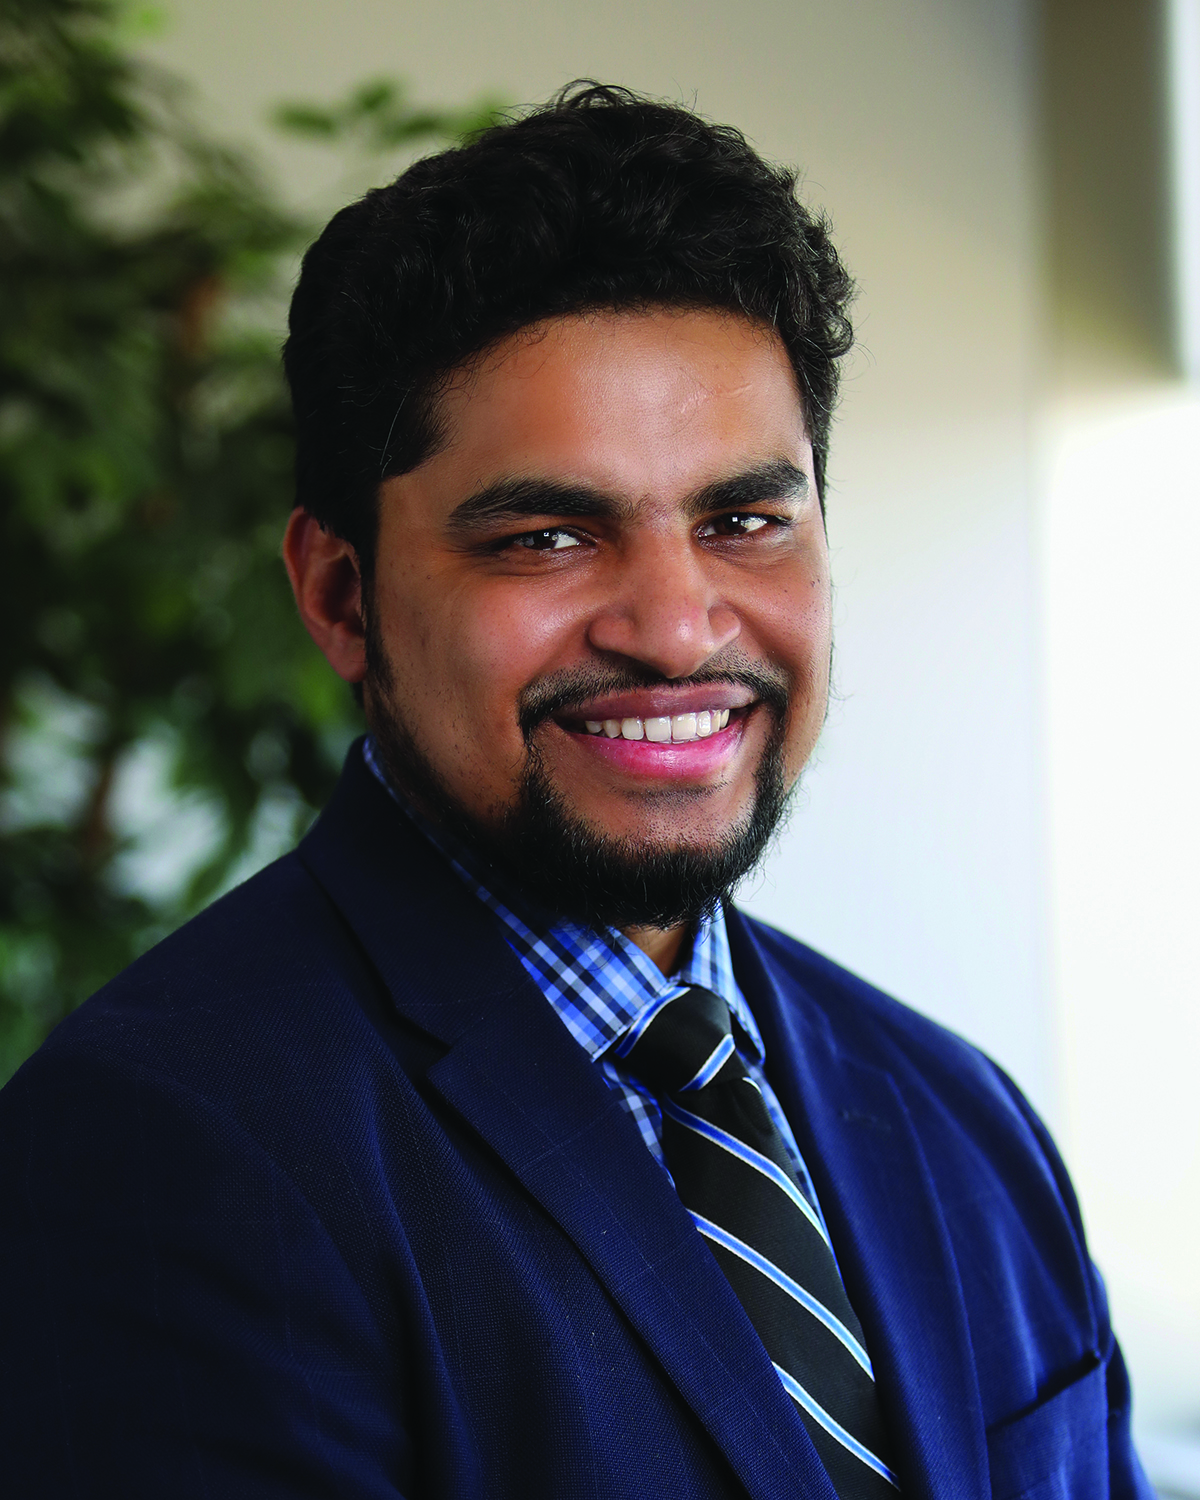 Rajeev Sudhakar, MD - An Independent Provider of Memorial Healthcare